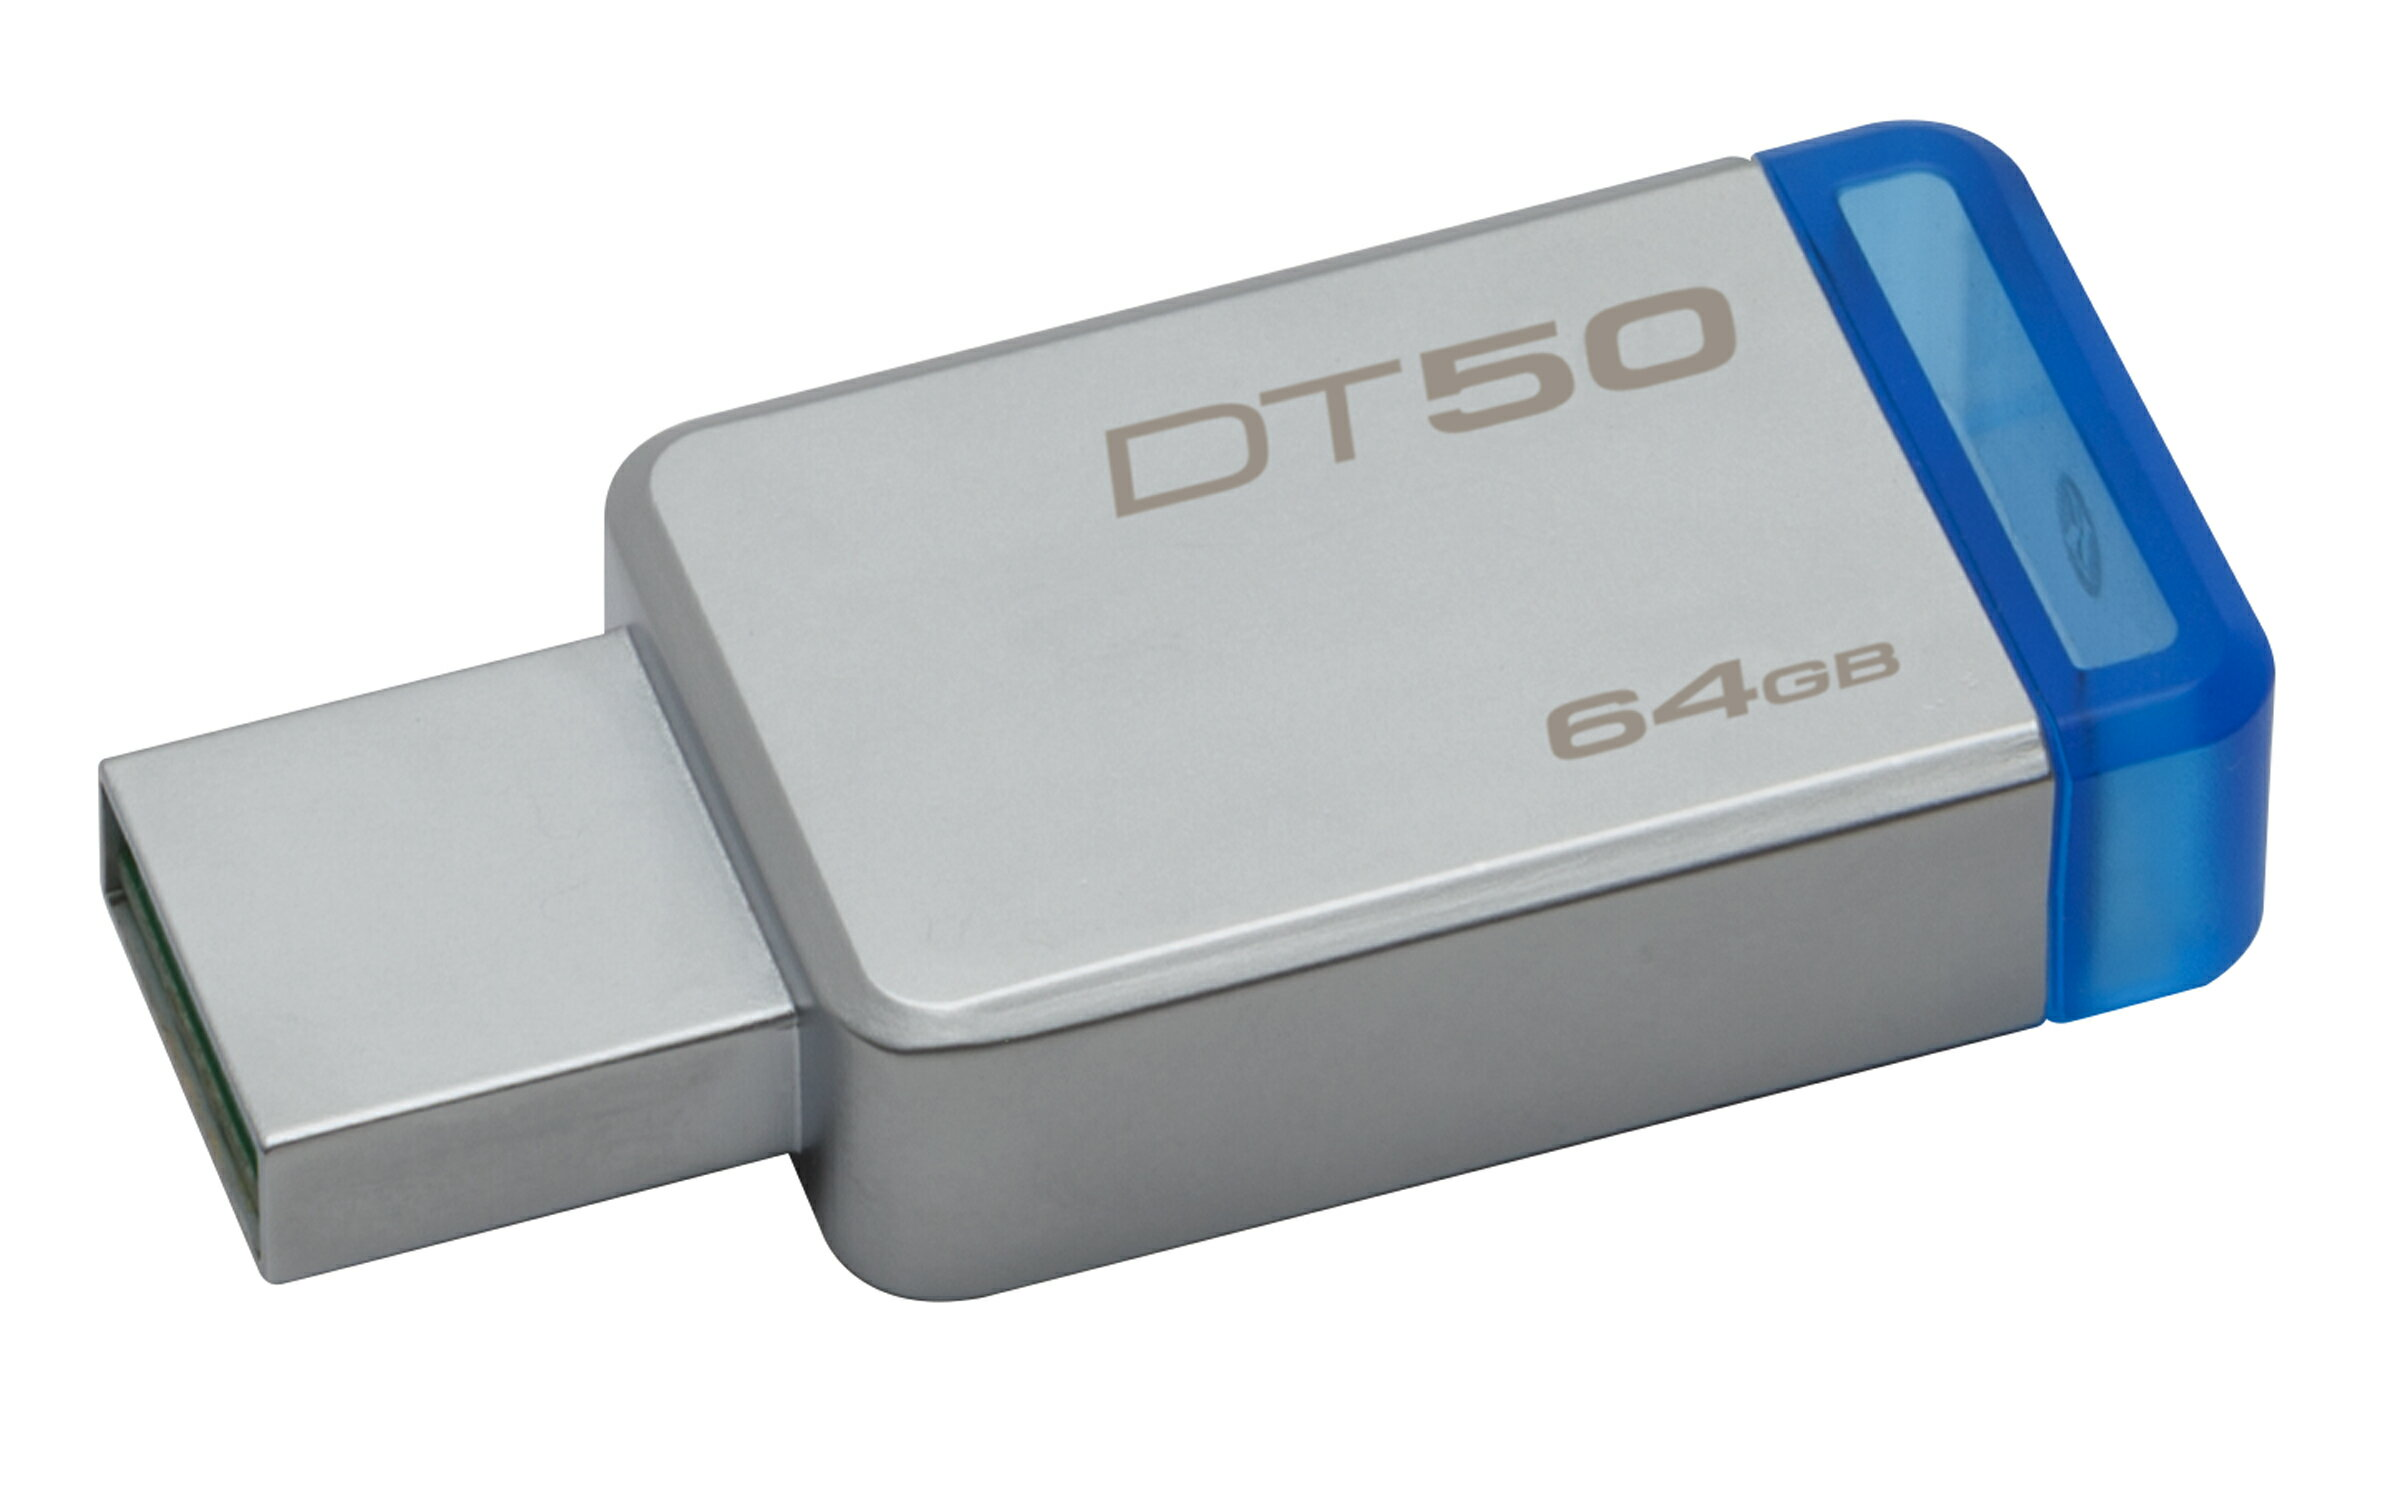 Kingston 64GB DataTraveler 50 64G DT50 USB 3.1 Gen 1 USB 3.0 110MB/s Flash Pen Thumb Drive DT50/64GB 2